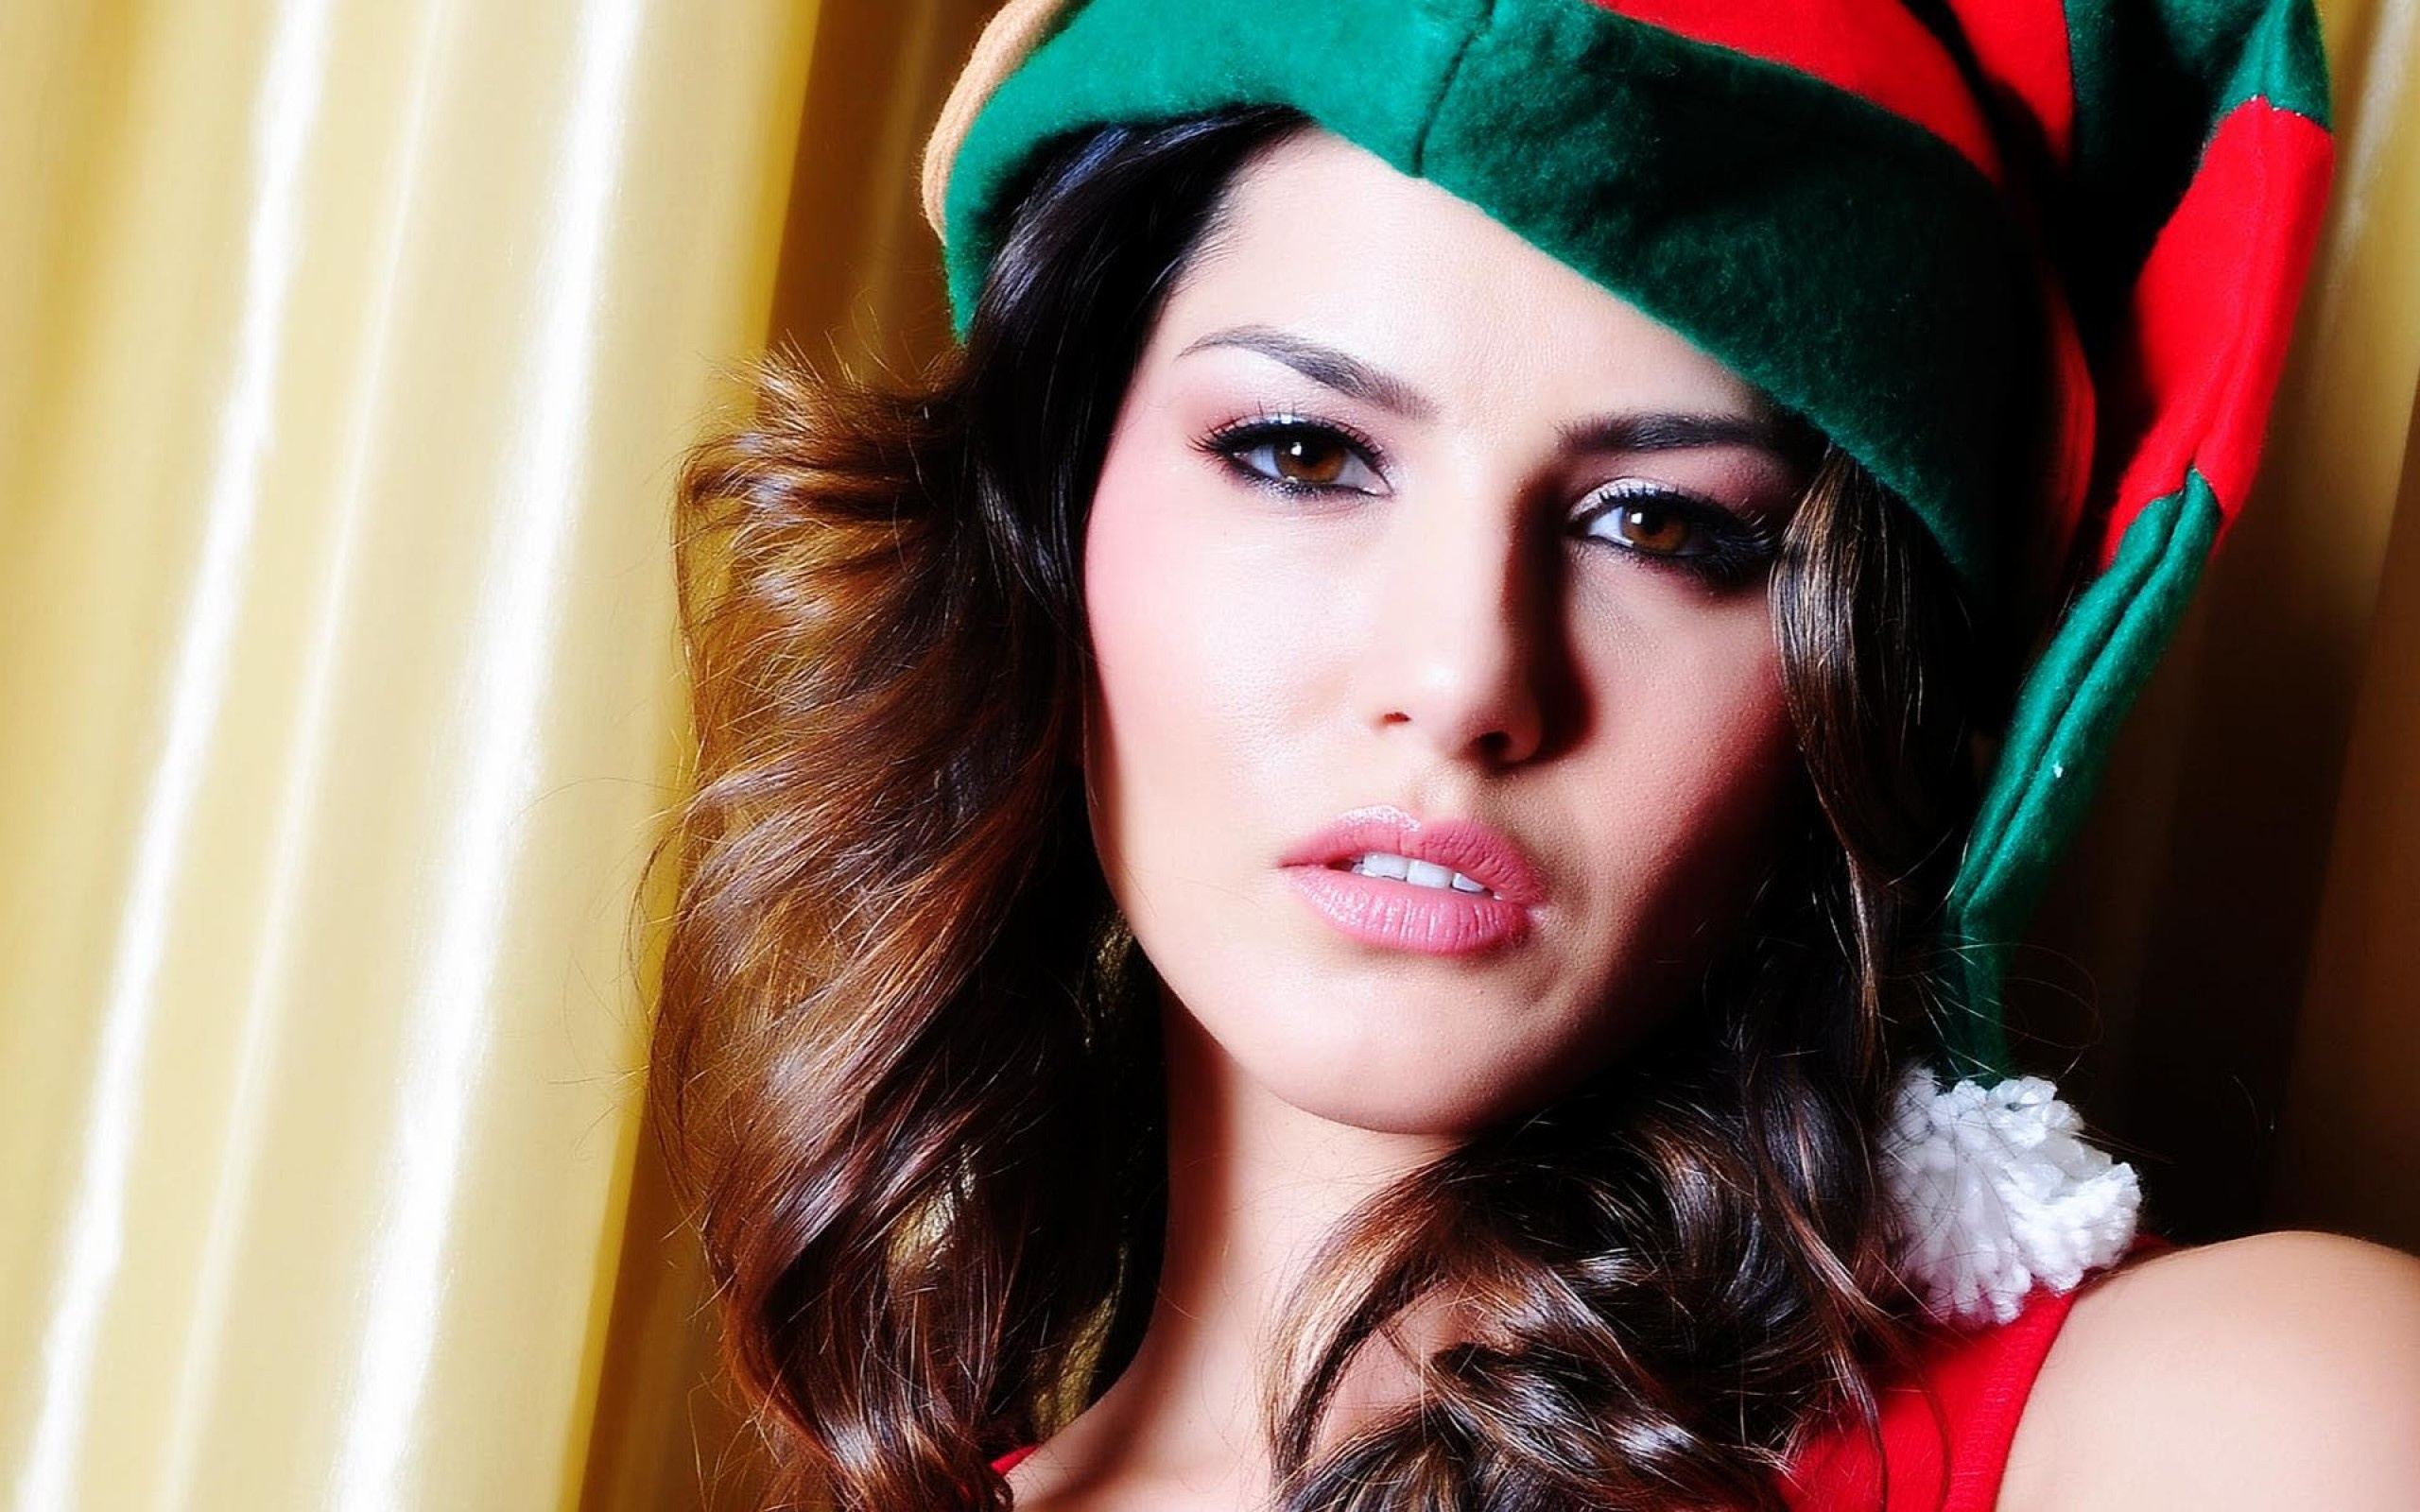 Sunny Leone Indian Actress Wallpapers In Jpg Format For Free Download